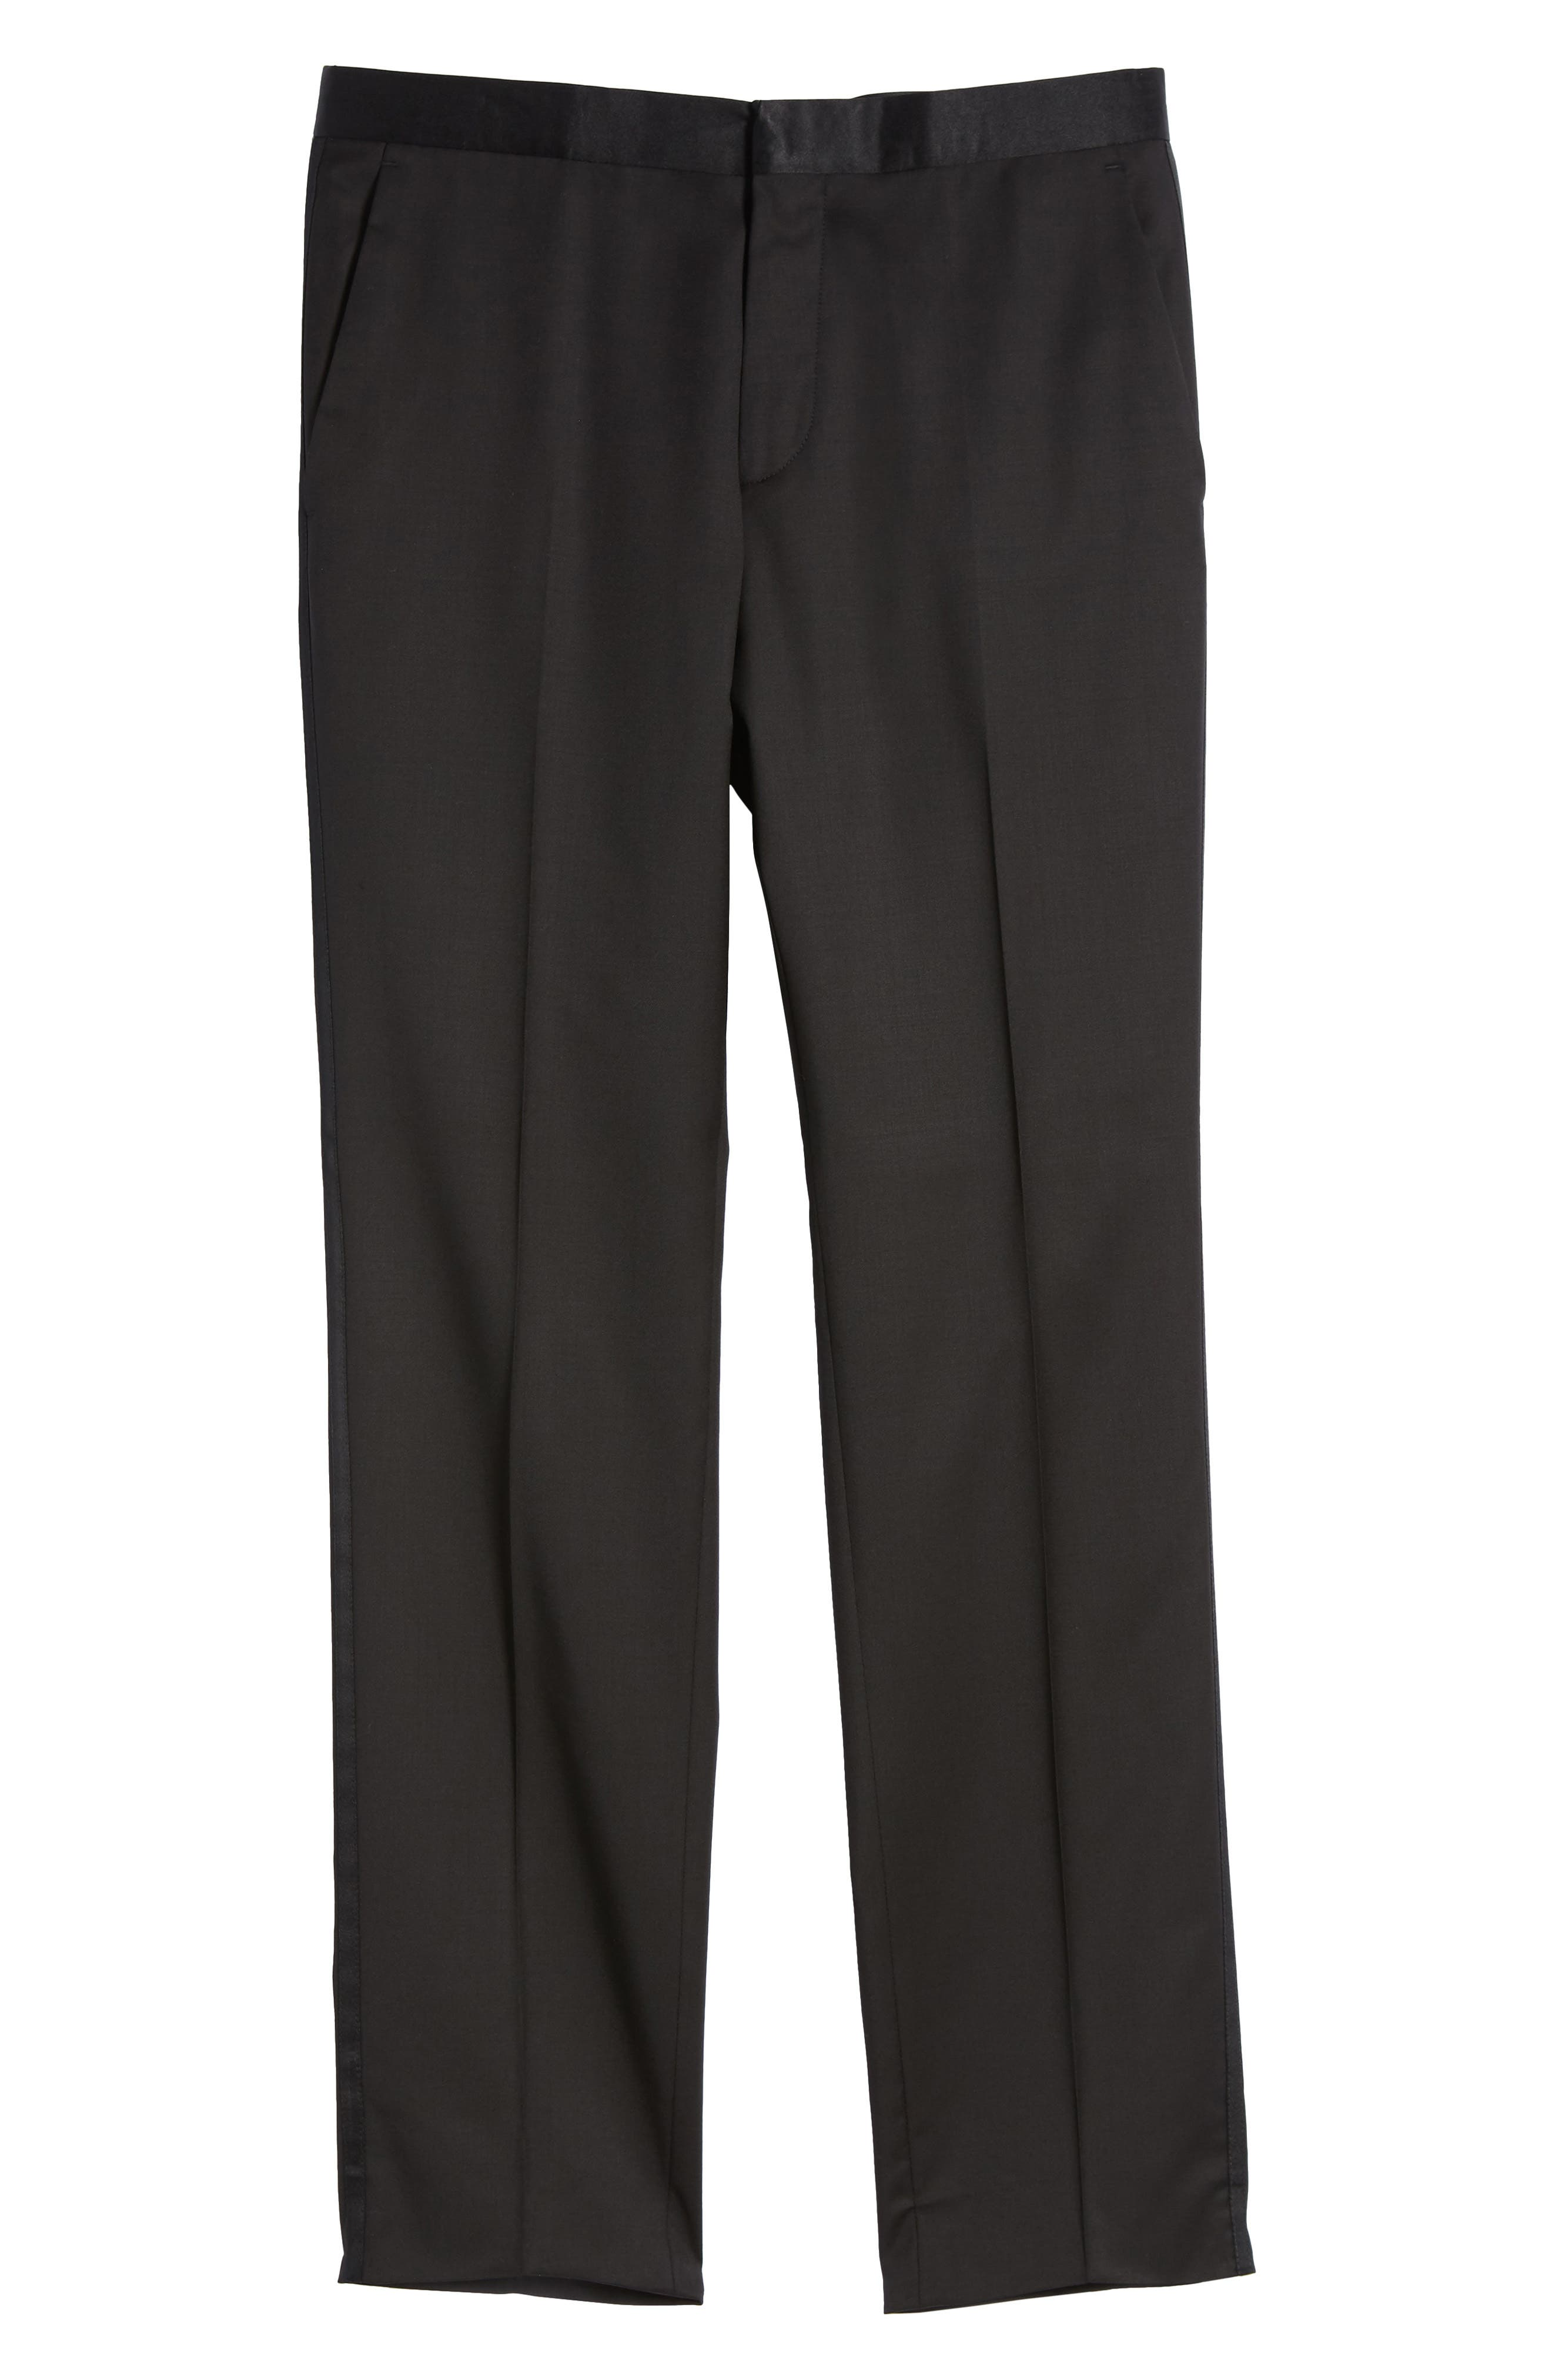 Gilan CYL Flat Front Wool Trousers,                             Alternate thumbnail 6, color,                             BLACK